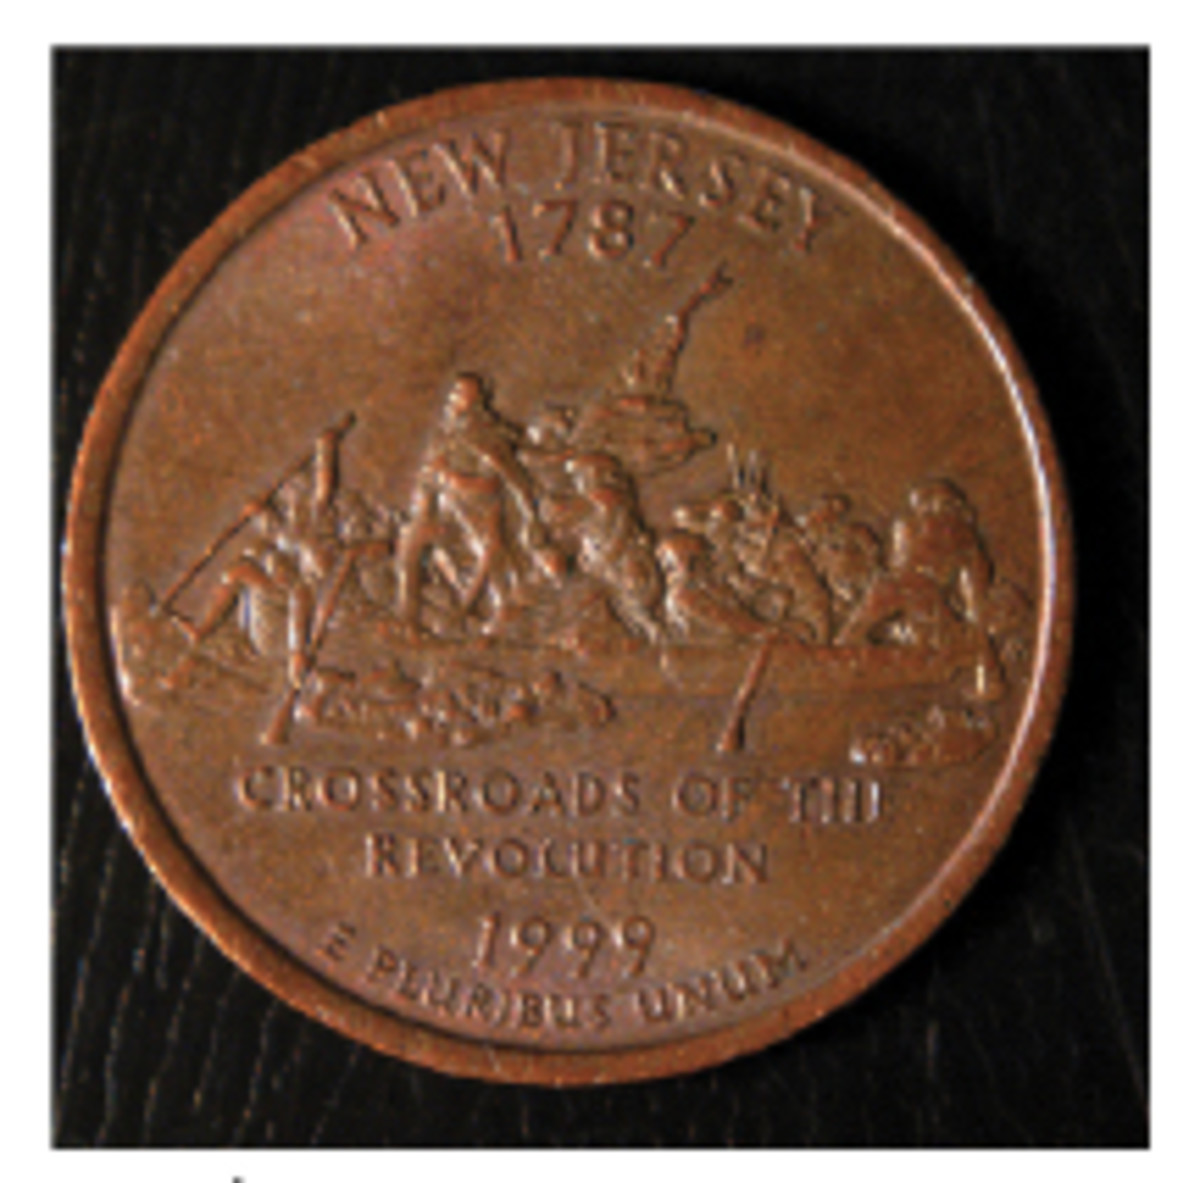 The outer silver-colored layer was missing when this New Jersey quarter was struck.